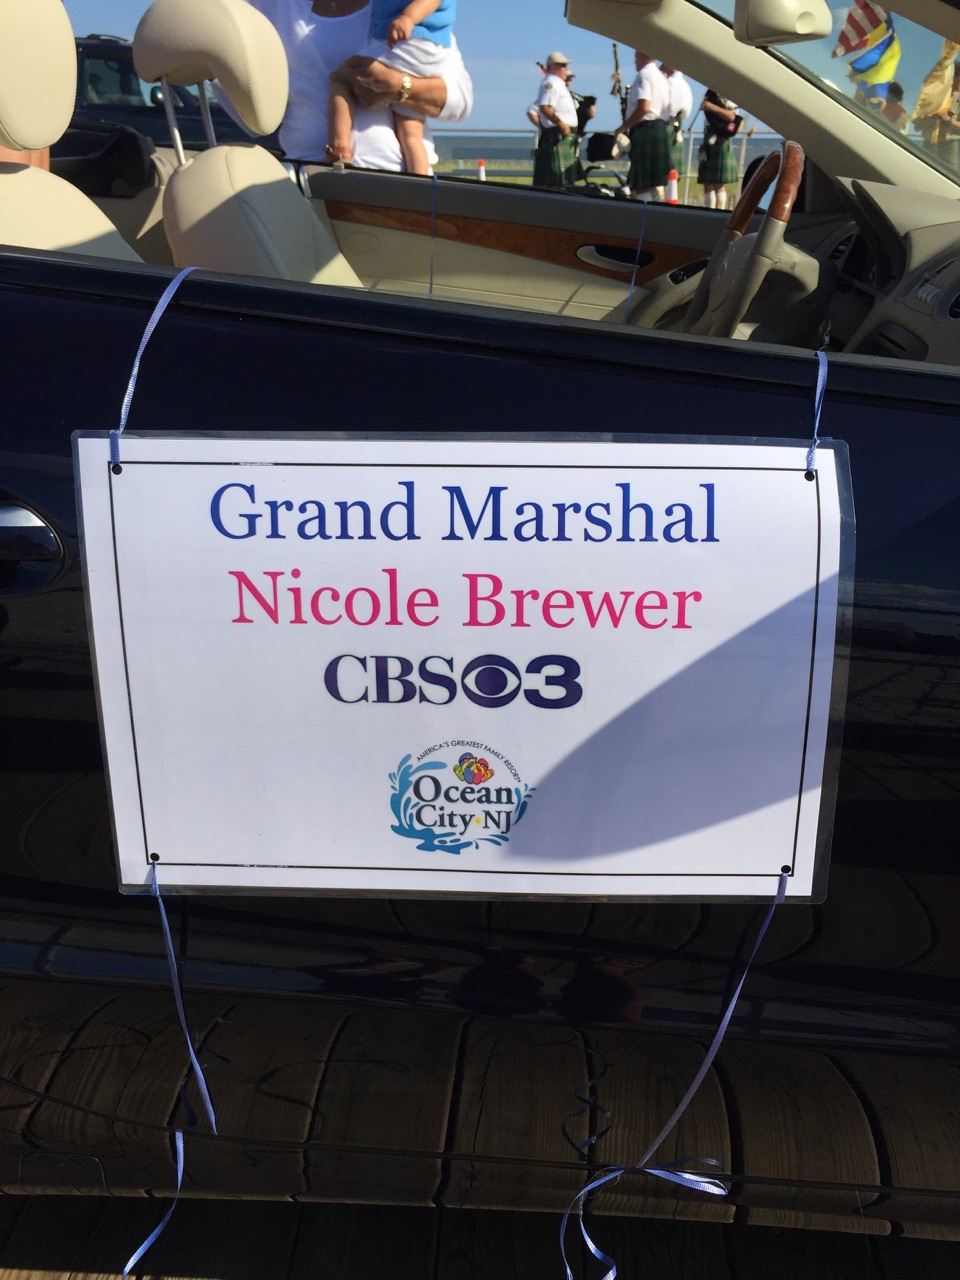 Nicole Brewer serves as Grand Marshall at the Ocean City, NJ baby parade!